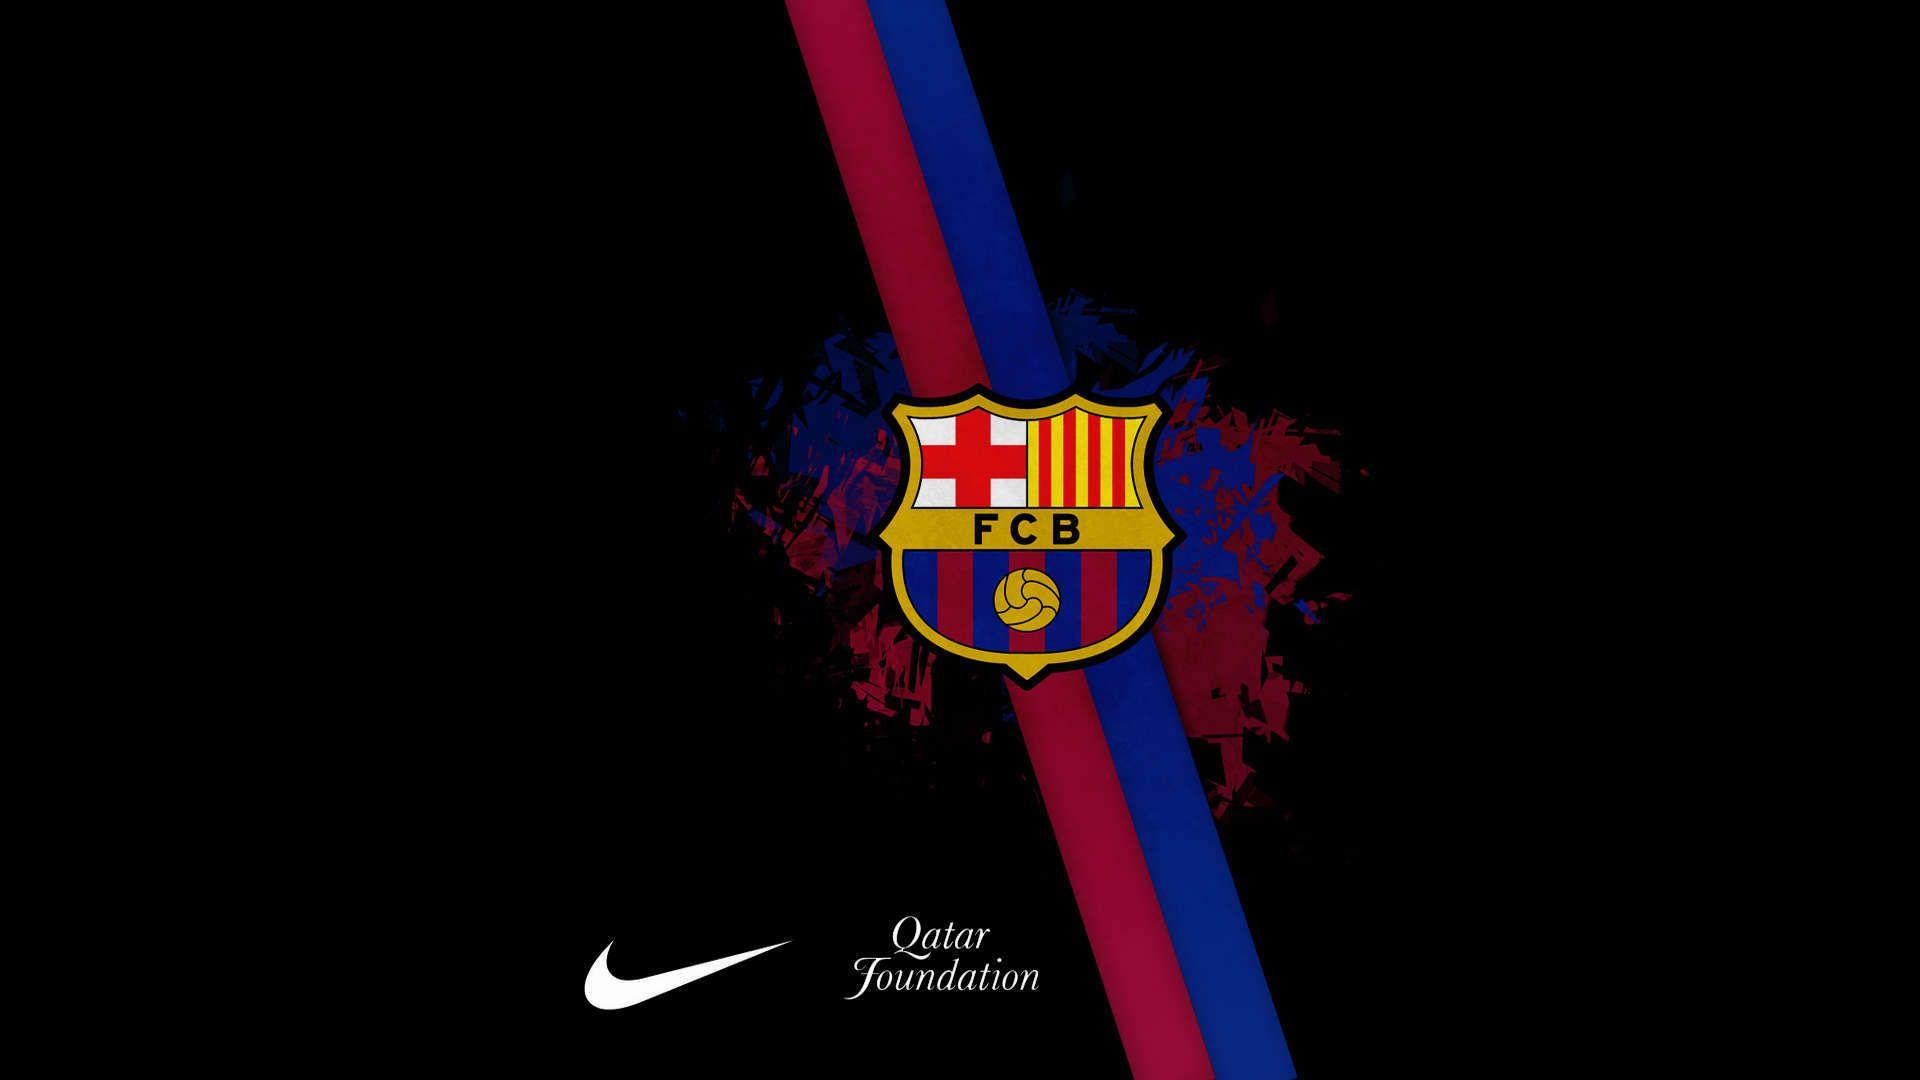 FC Barcelona Wallpapers 1920x1080